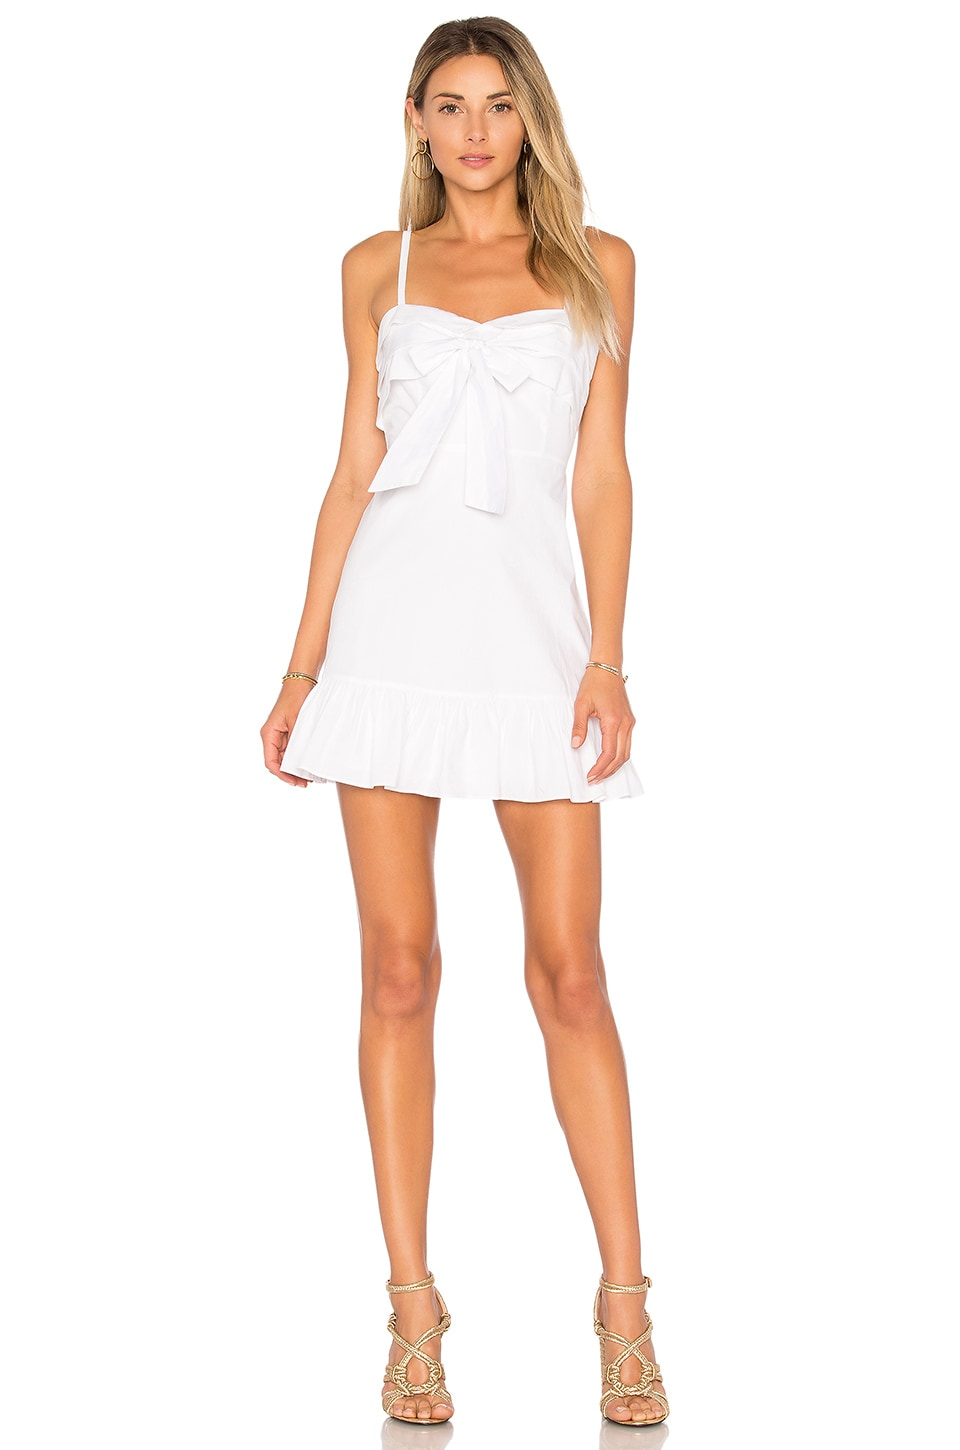 Lovers + Friends x REVOLVE Rania Dress in White